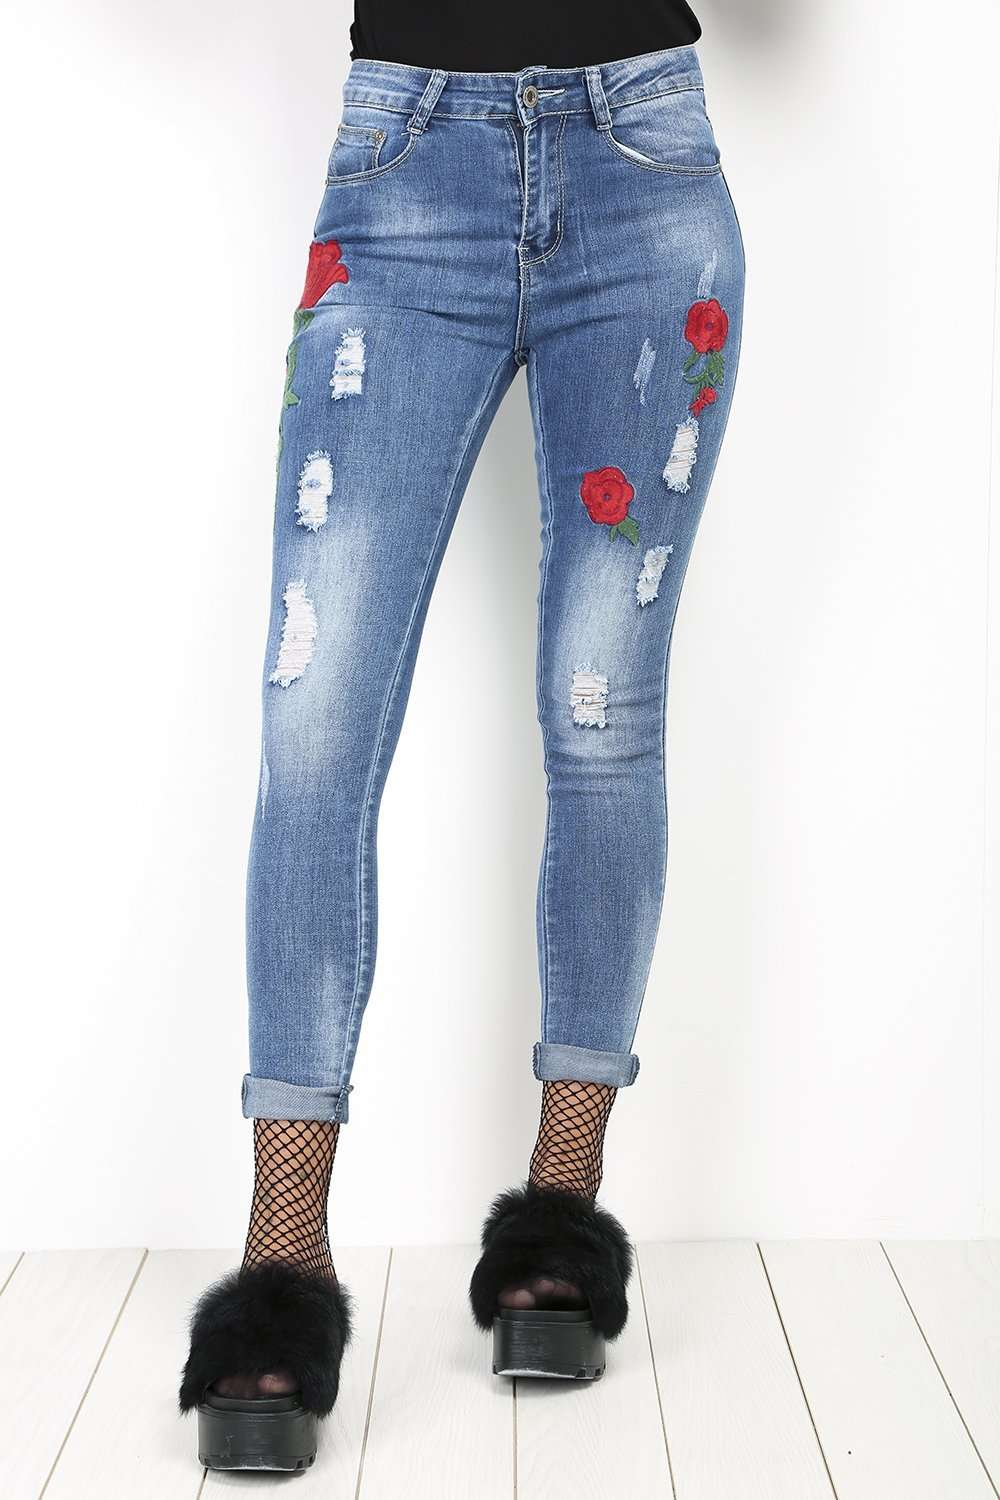 Caren Floral Applique Ripped Skinny Jeans - bejealous-com